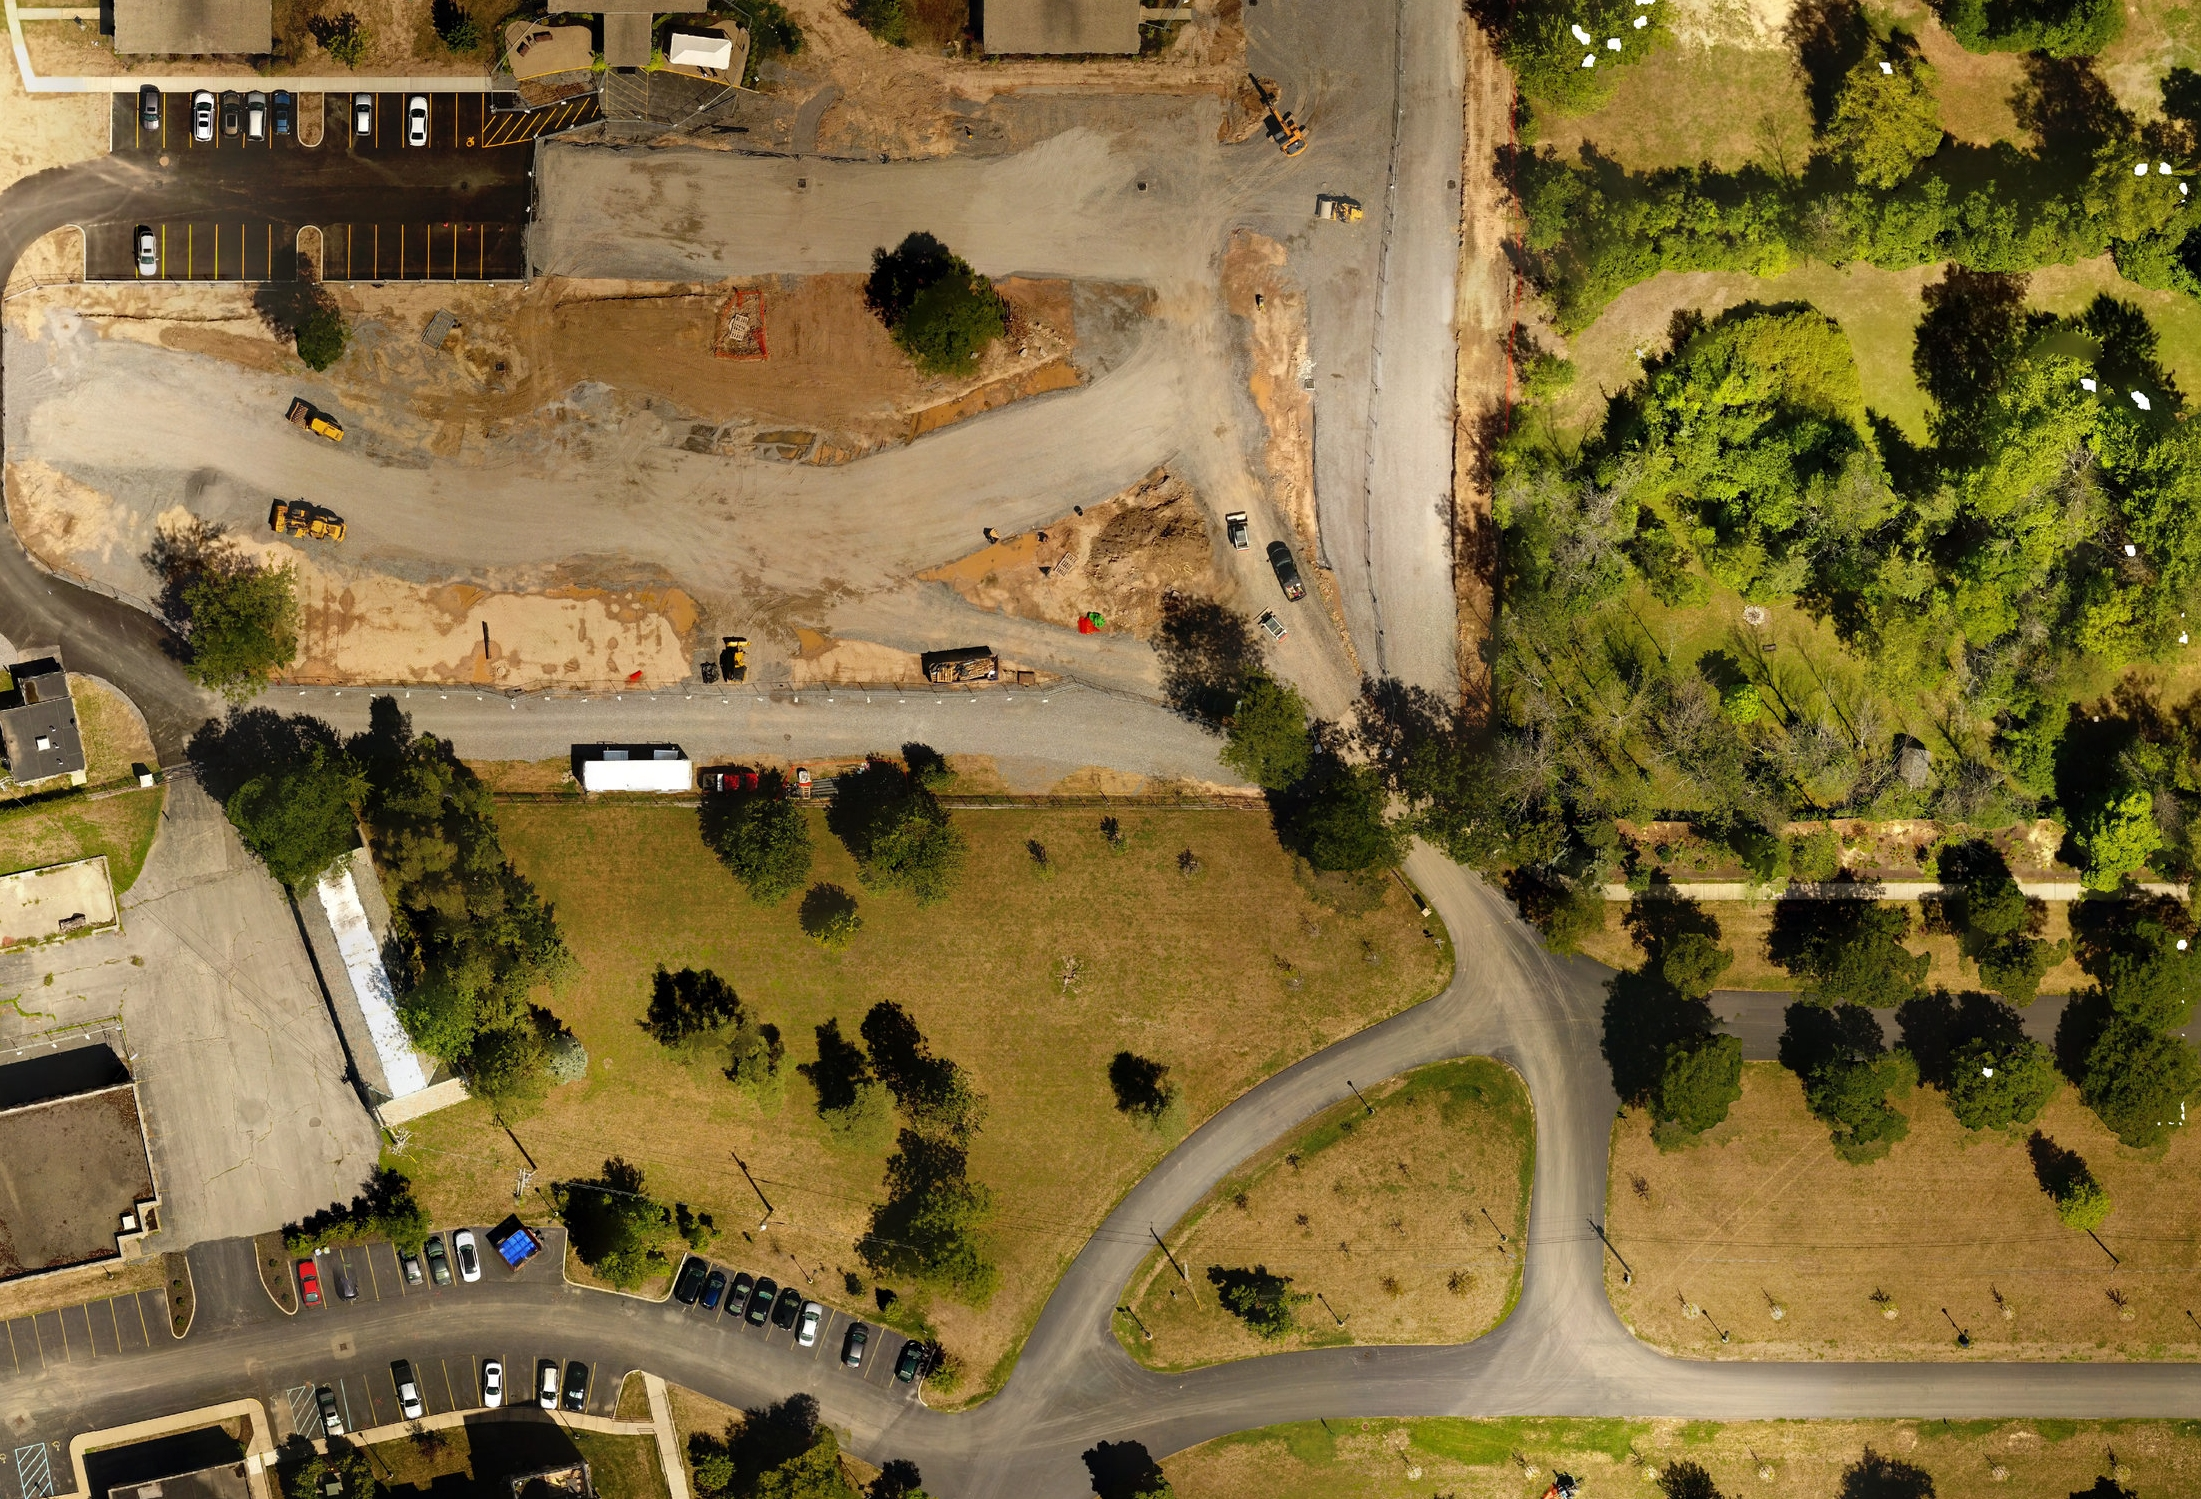 By precisely stitching hundreds of georeferenced images taken from a properly planned drone flight, we can quickly render accurate, beautiful and current map overlays at <2cm/pixel.